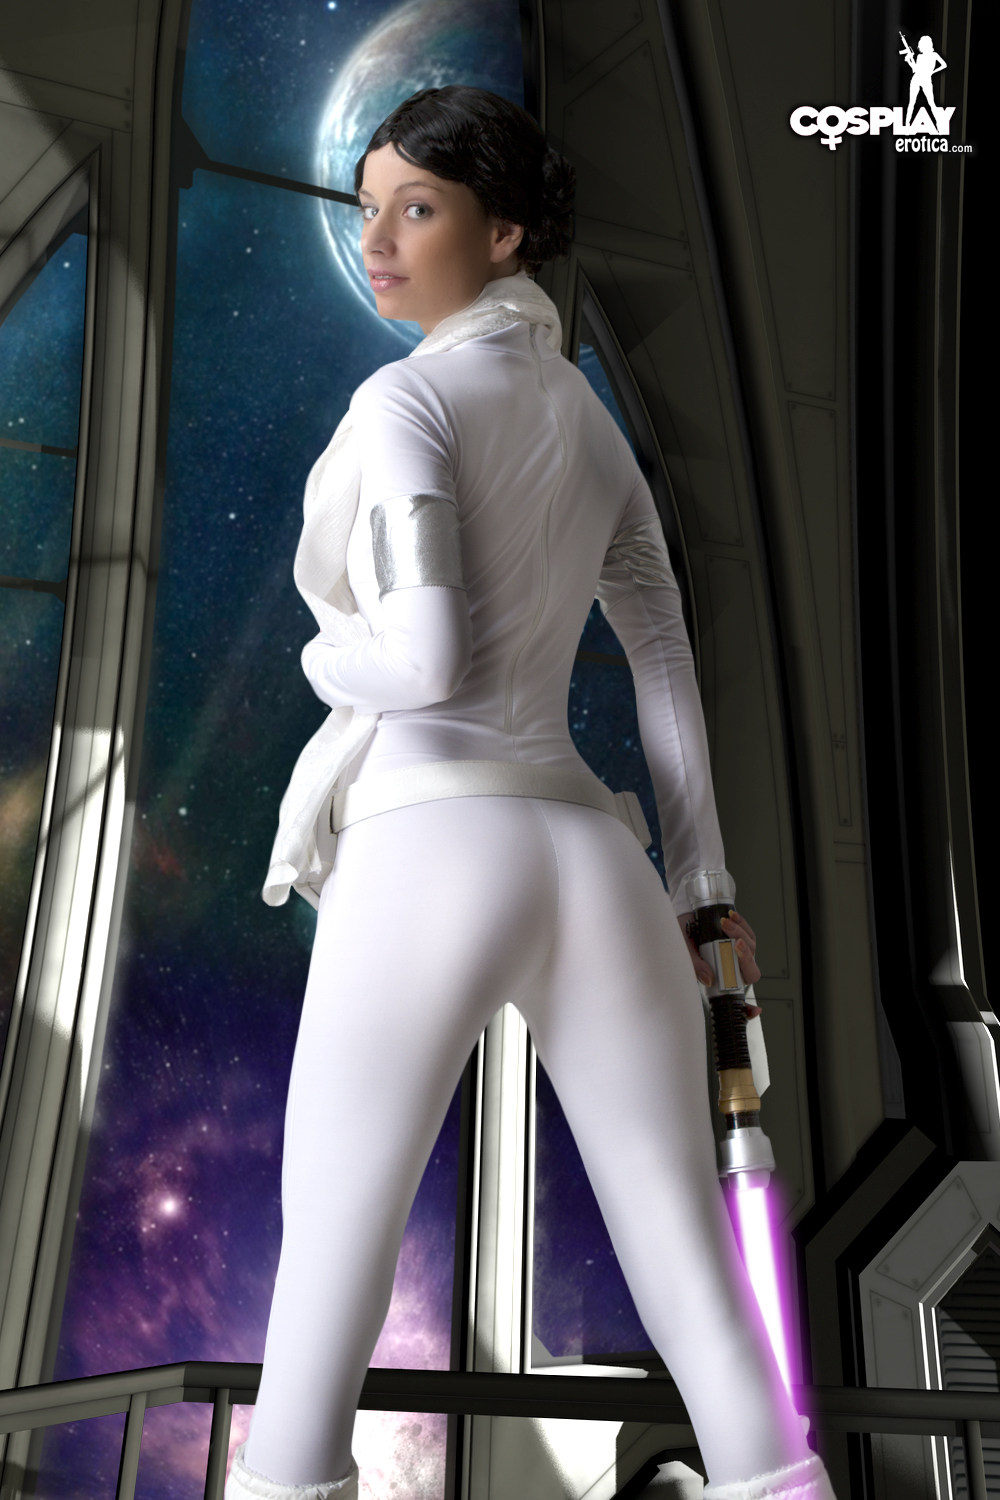 Star wars cosplay girls galleries hentia scene